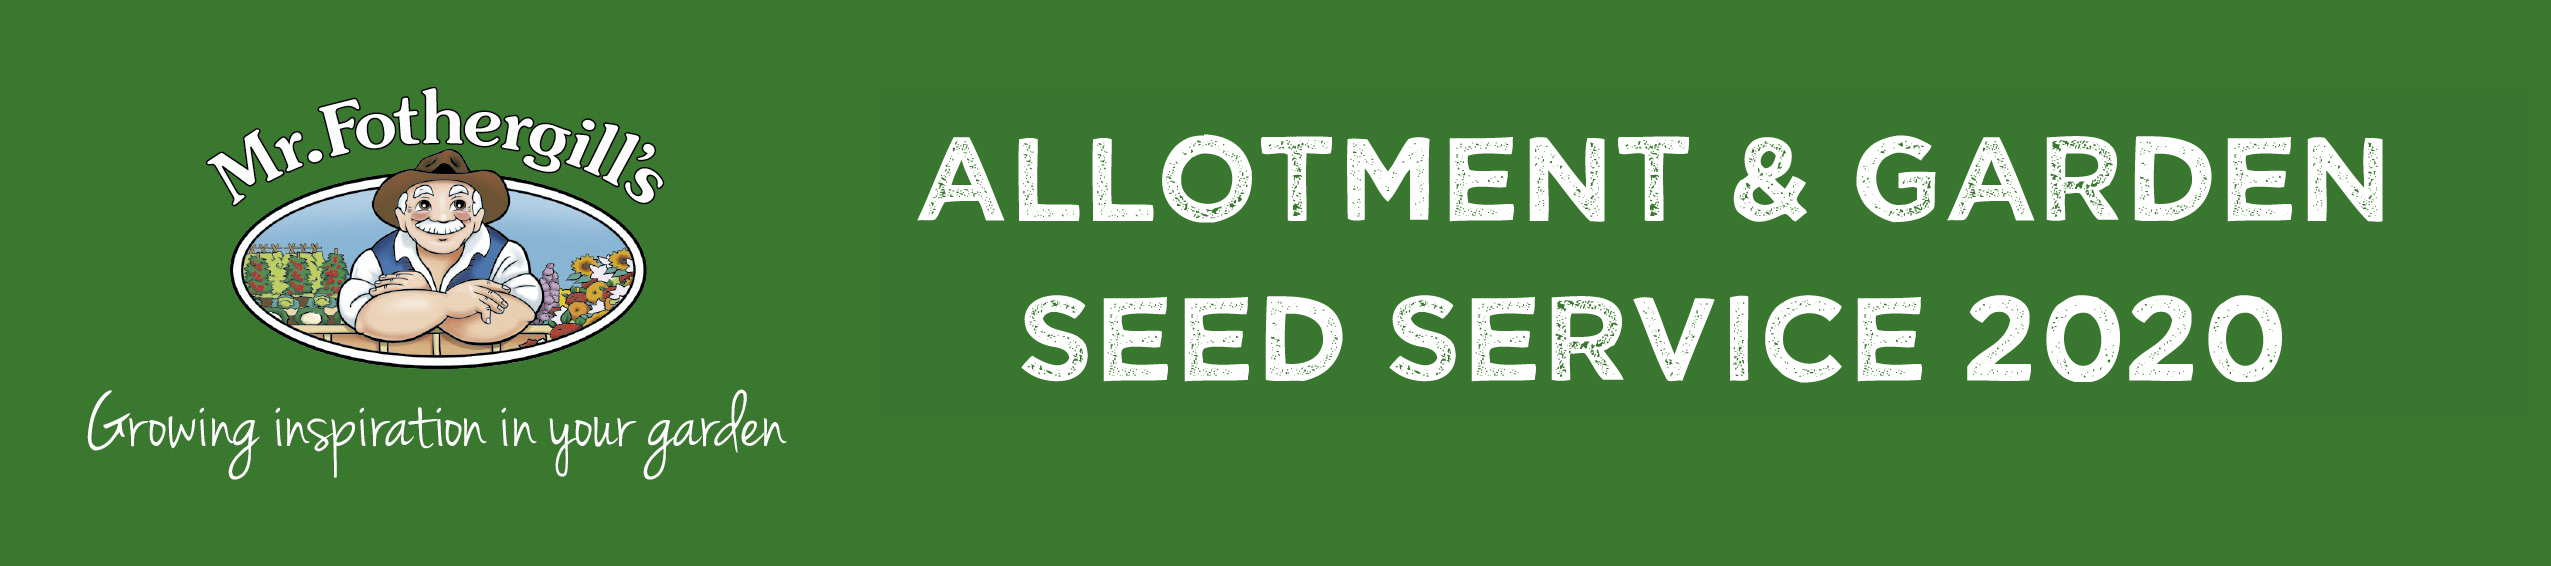 Mr Fothergill's Allotment & Gardening Club Service 2020